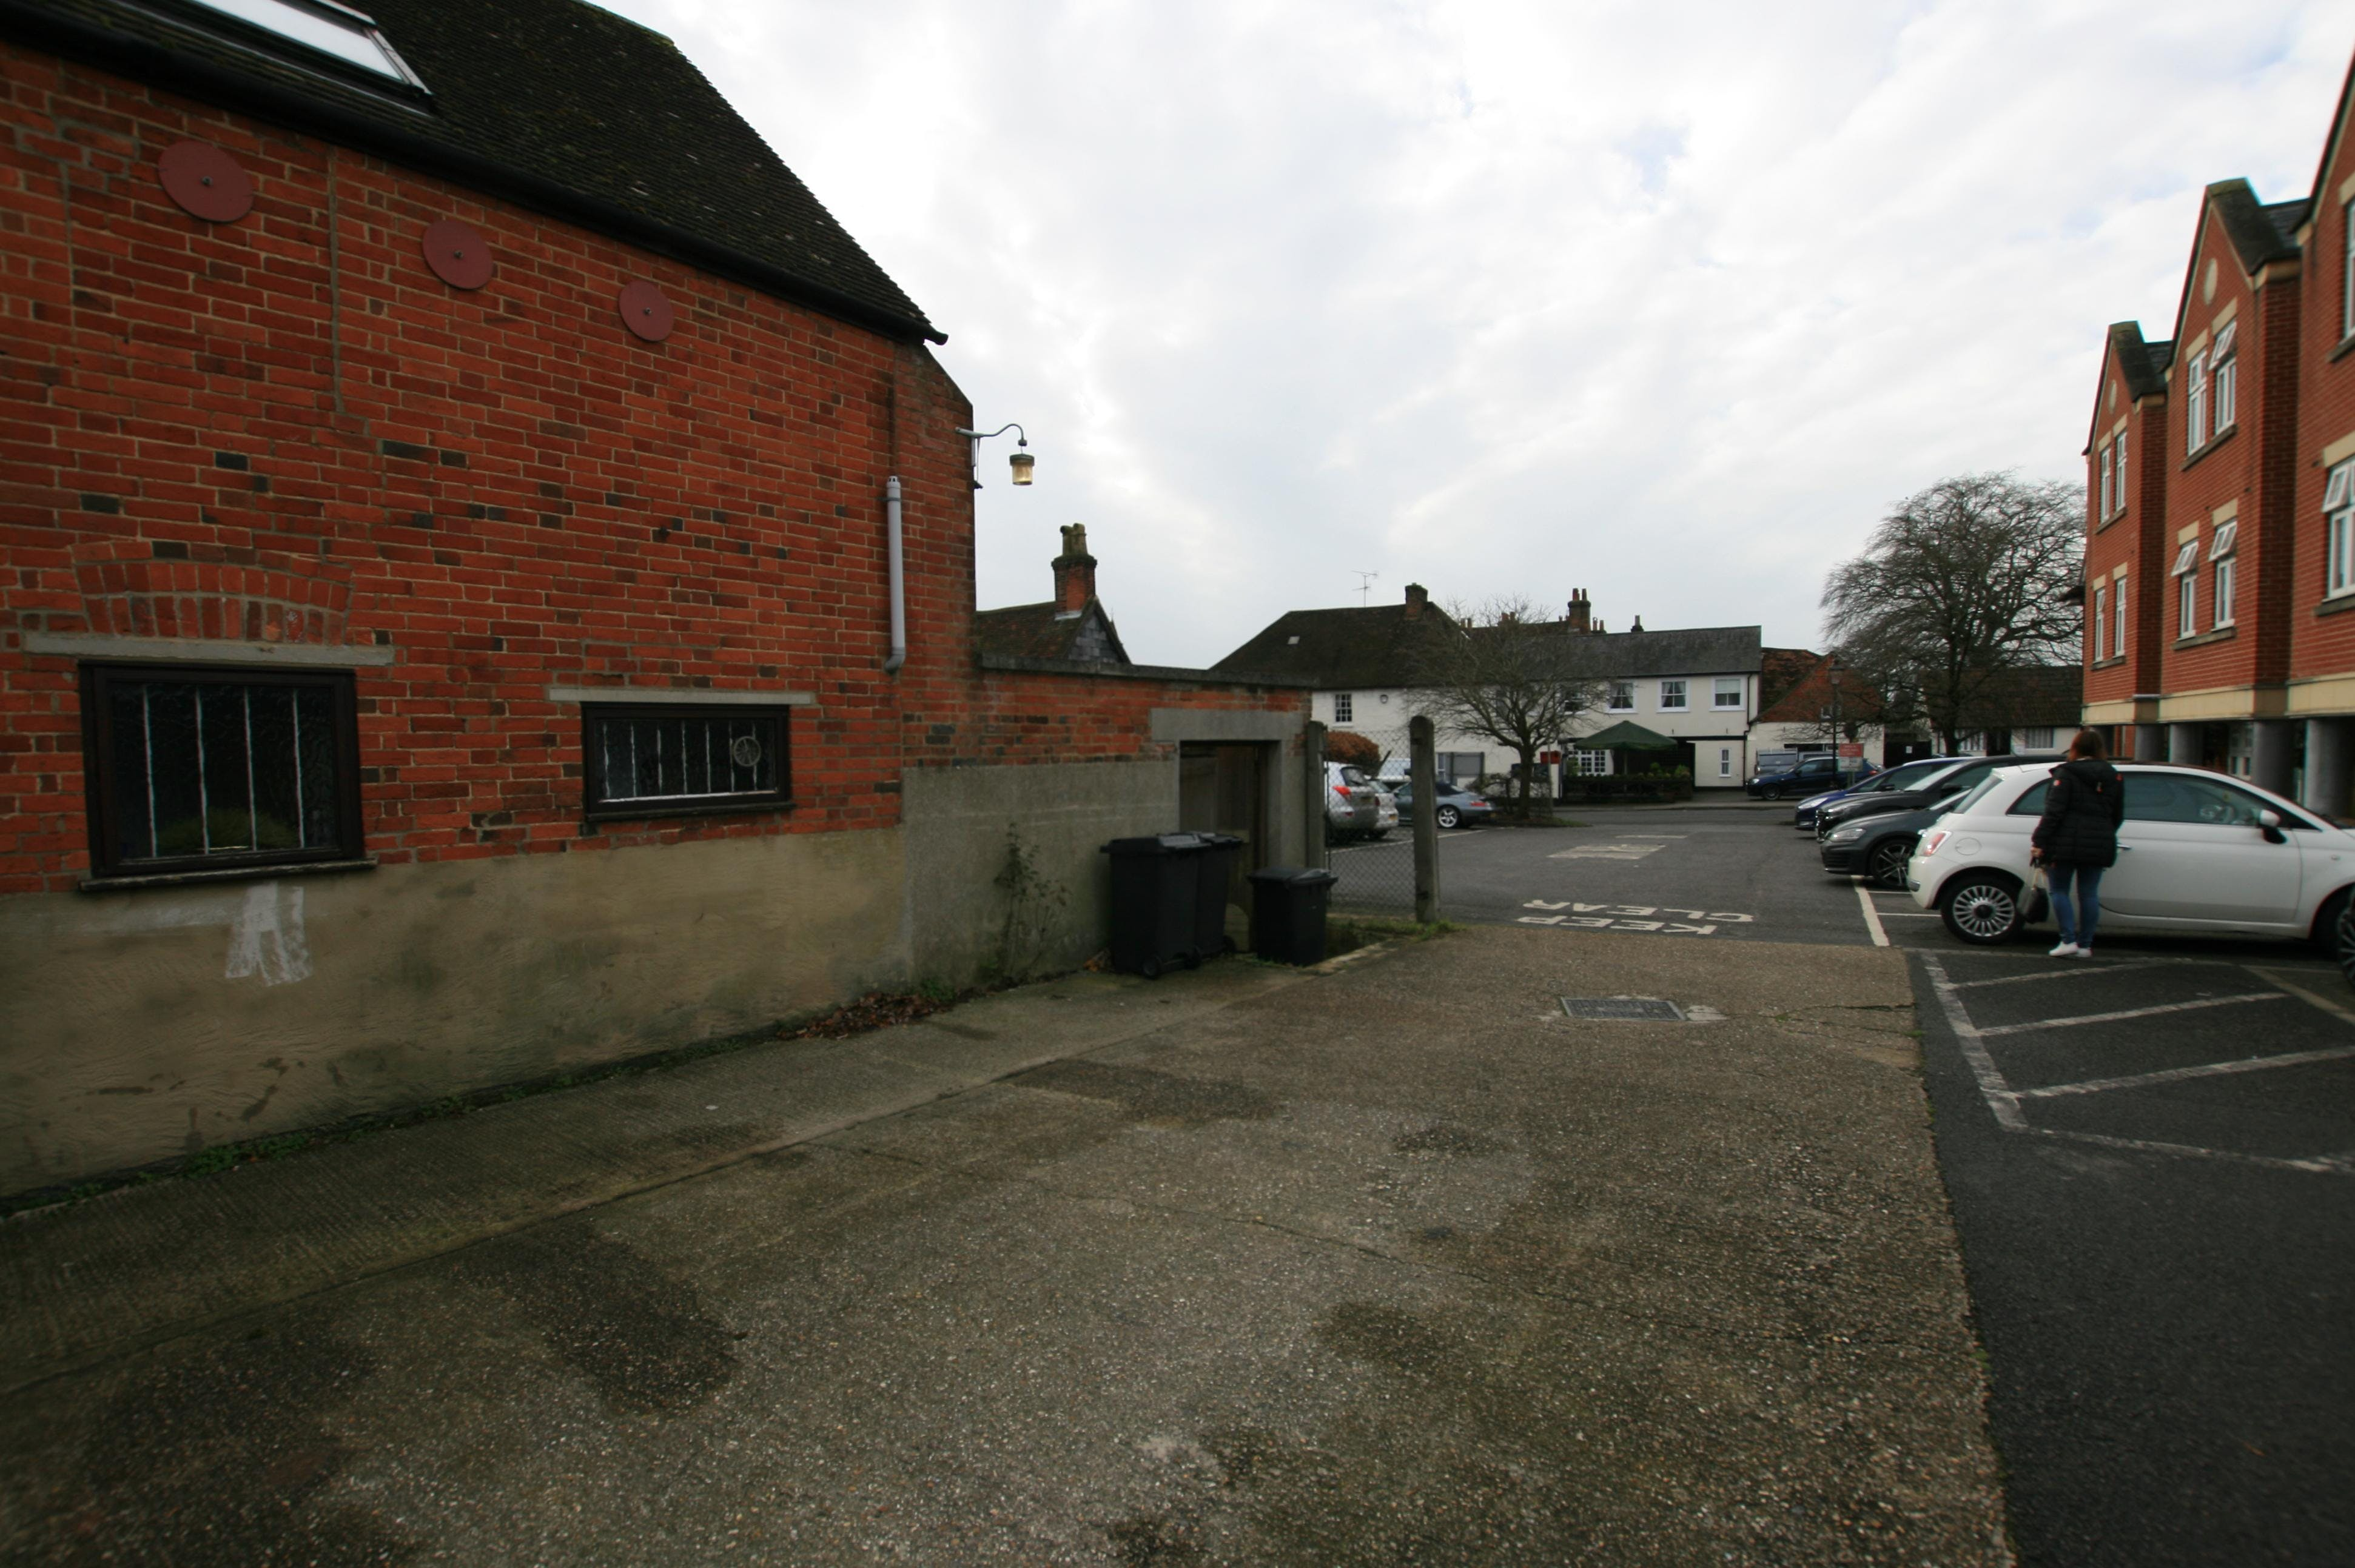 8 Normandy Street, Alton, Investments / Development (Land & Buildings) For Sale - IMG_0558.JPG